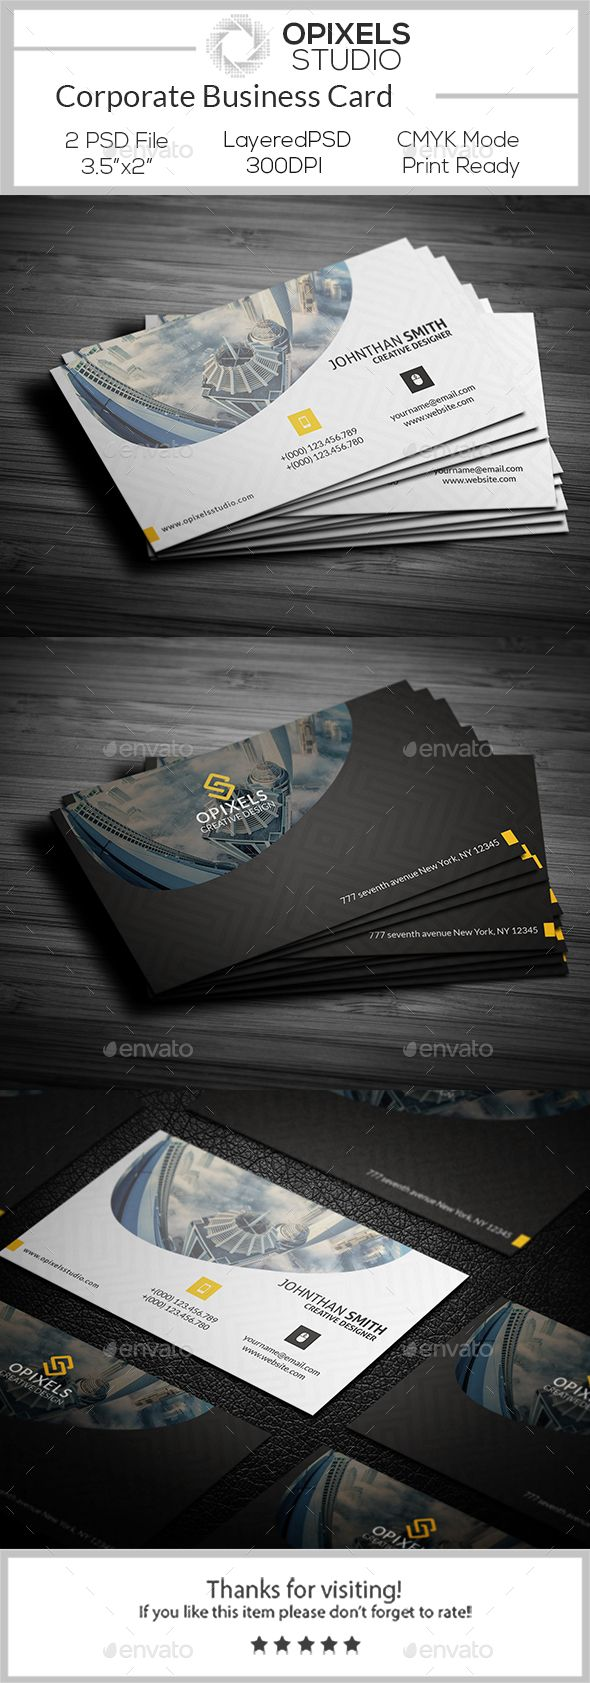 1109 best business card images on pinterest name cards business